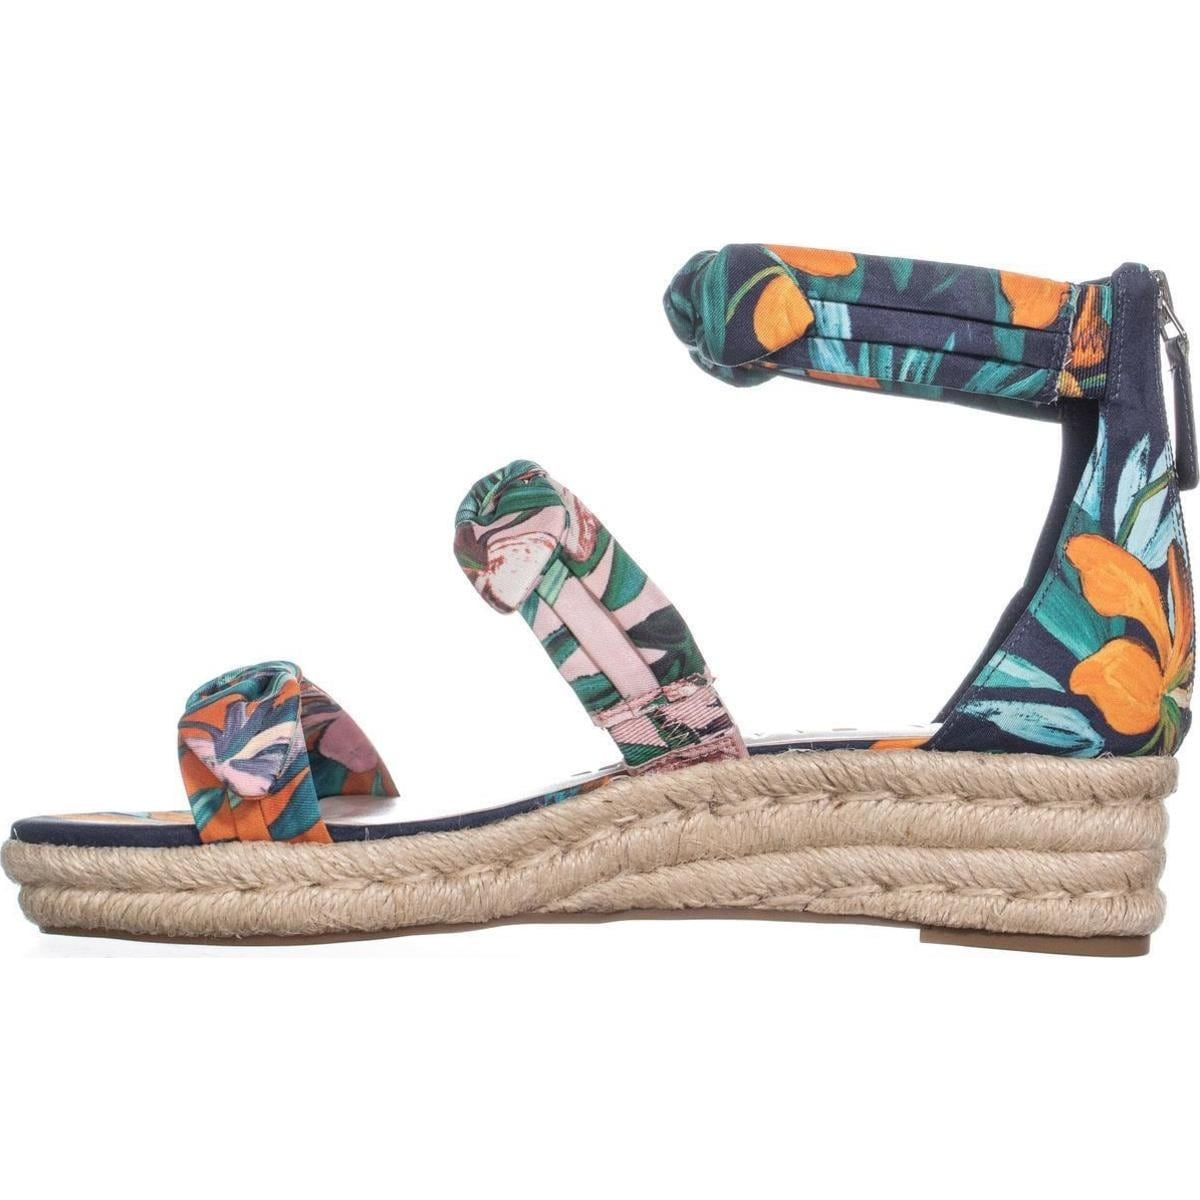 b993e43b84 Shop Nine West Allegro Bow Espadrilles Sandals, Navy Multi - On Sale - Free  Shipping Today - Overstock - 22809187